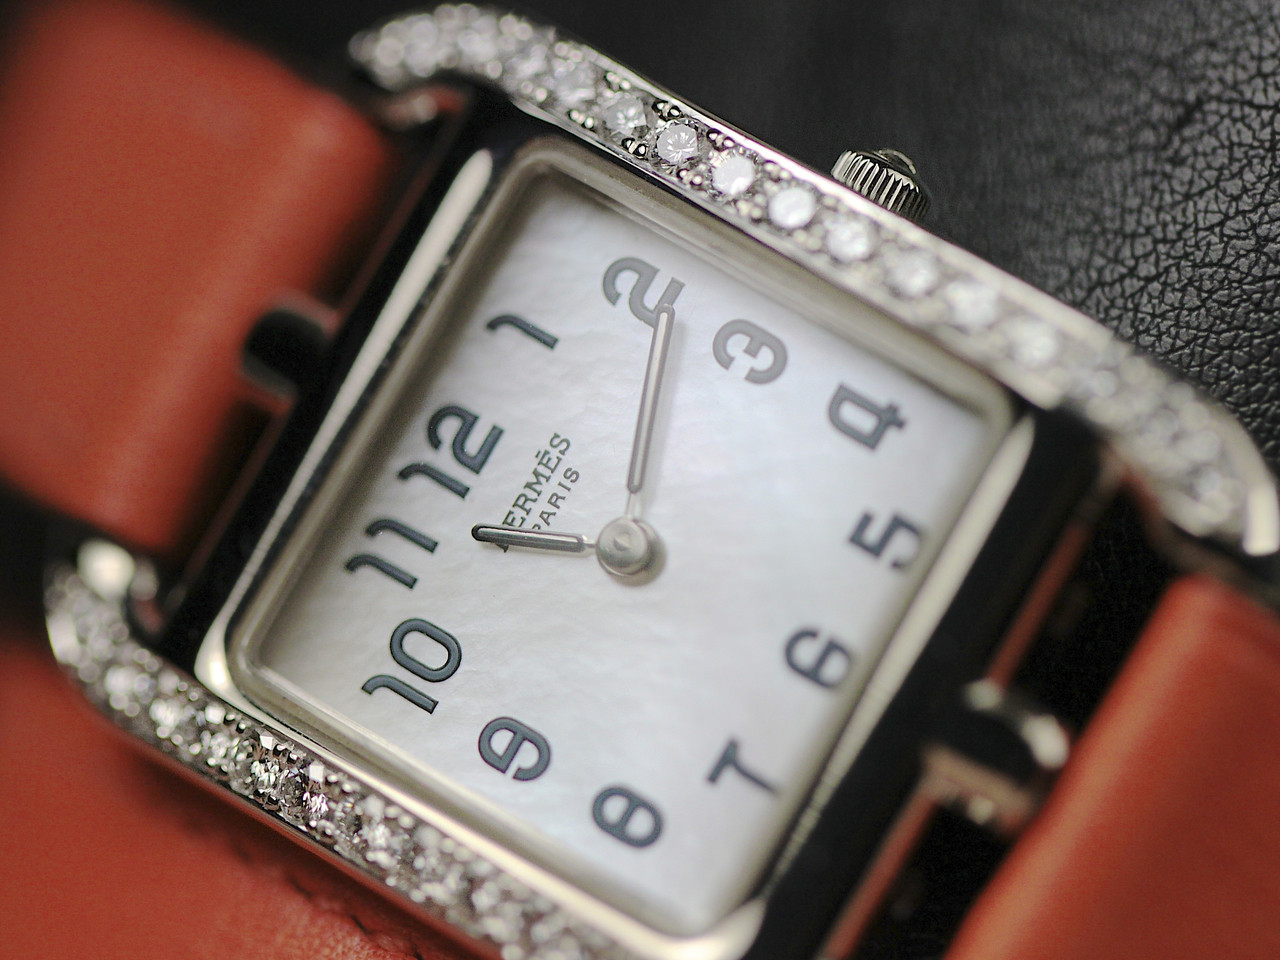 Dial with Mother of Pearl - Hermes Watch - Cape Cod White Gold with Diamonds, Pre-Owned, www.Legendoftime.com - Chicago Watch Center